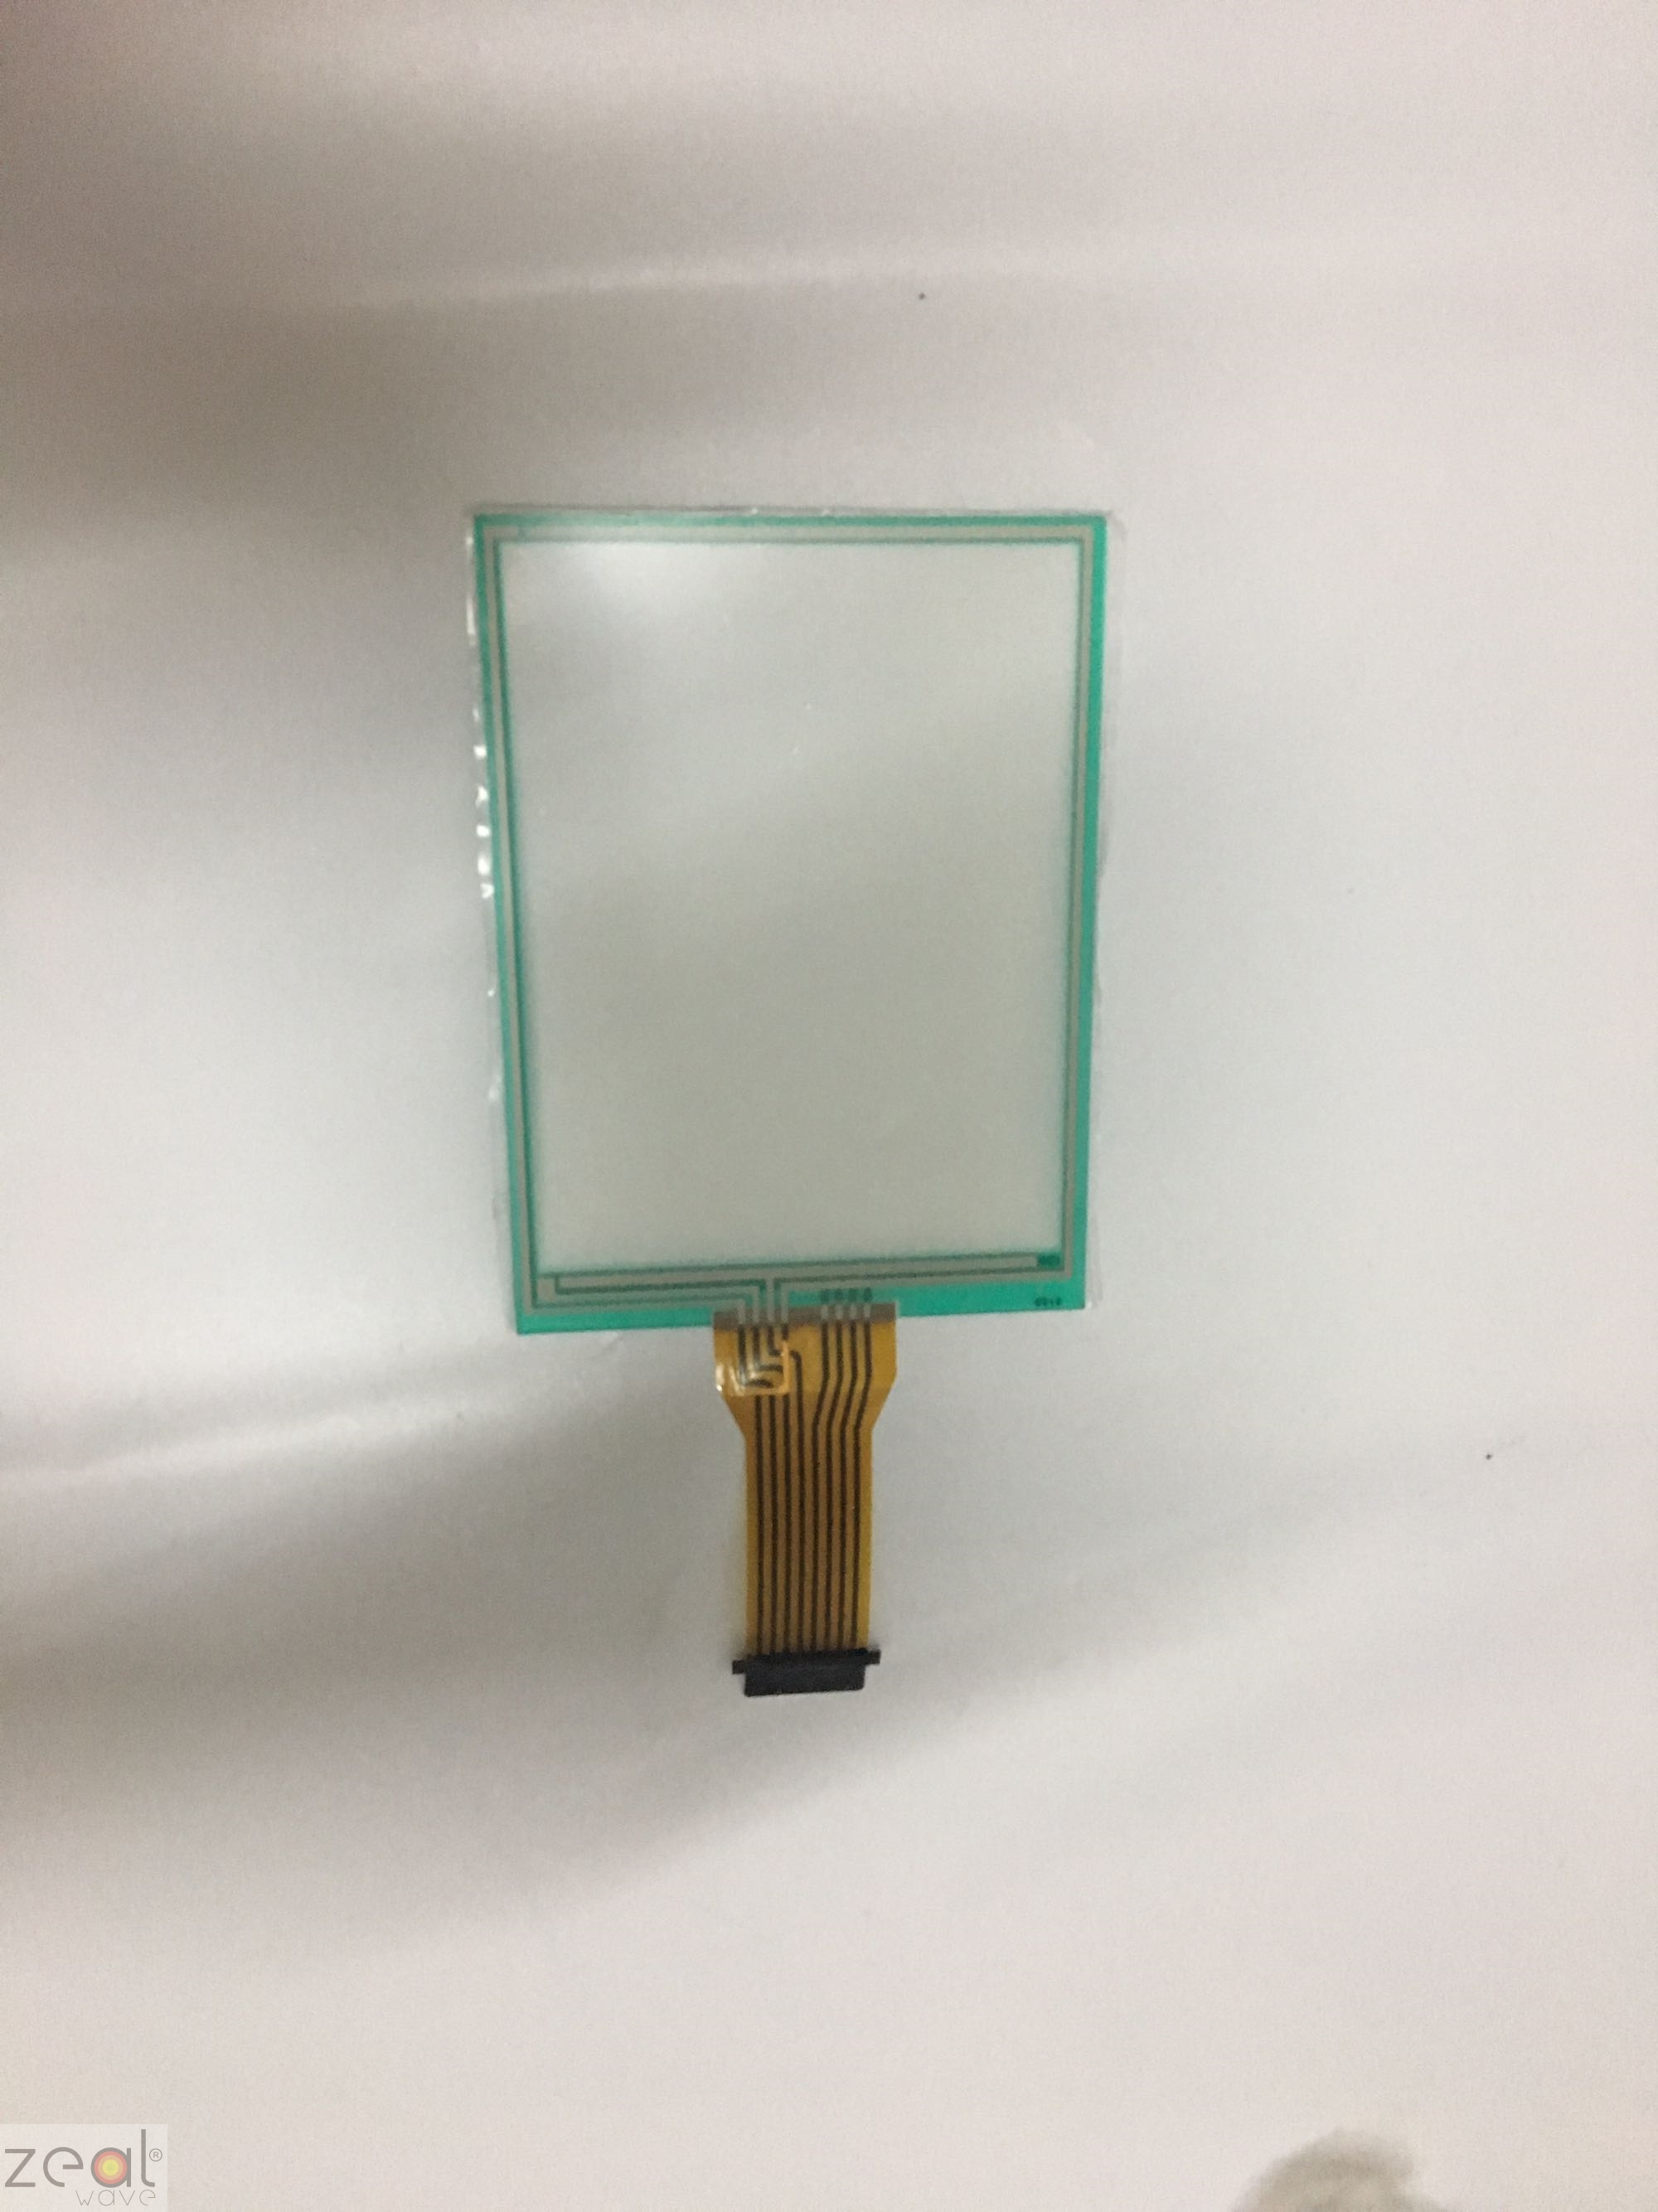 New for Korg Triton Classic Triton Studio Trinity I30 8 pin Korg Touch screen Digitizer touch panel экран для ванны triton лиза